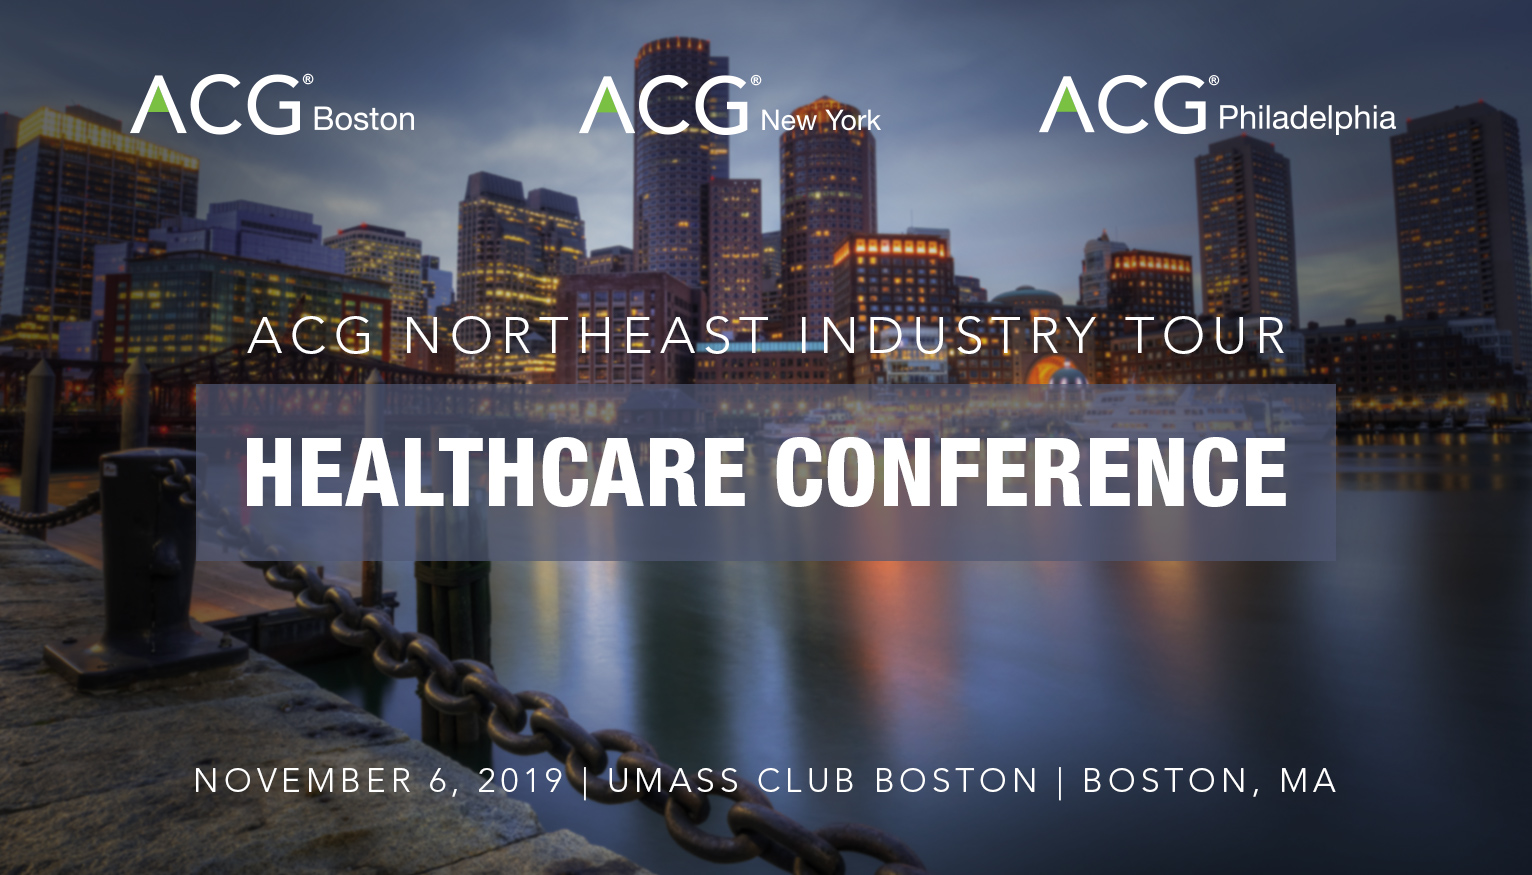 ACG Northeast Industry Tour Healthcare Conference 2019